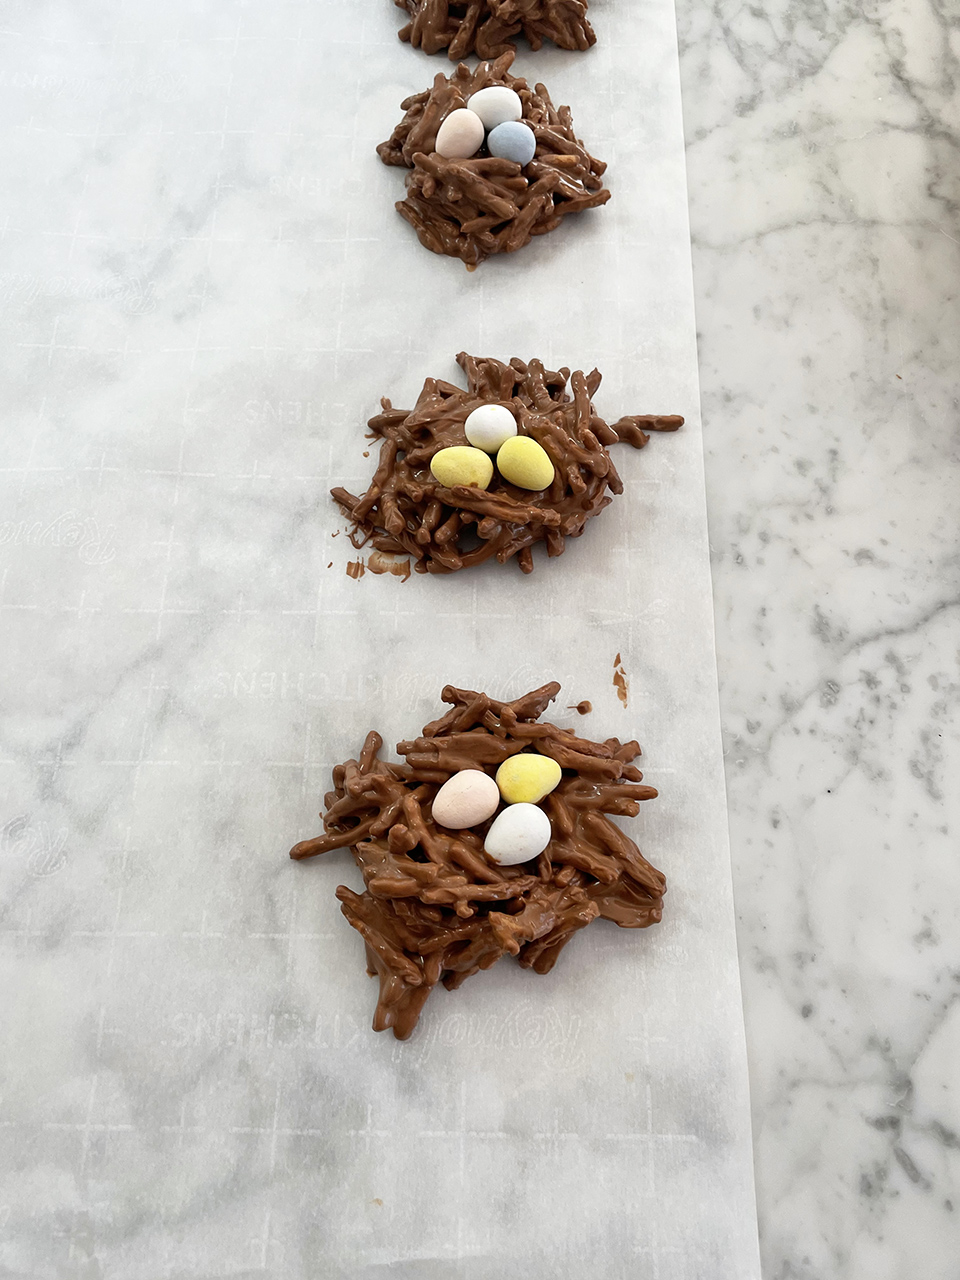 Adding Cadbury Mini Eggs to Nests